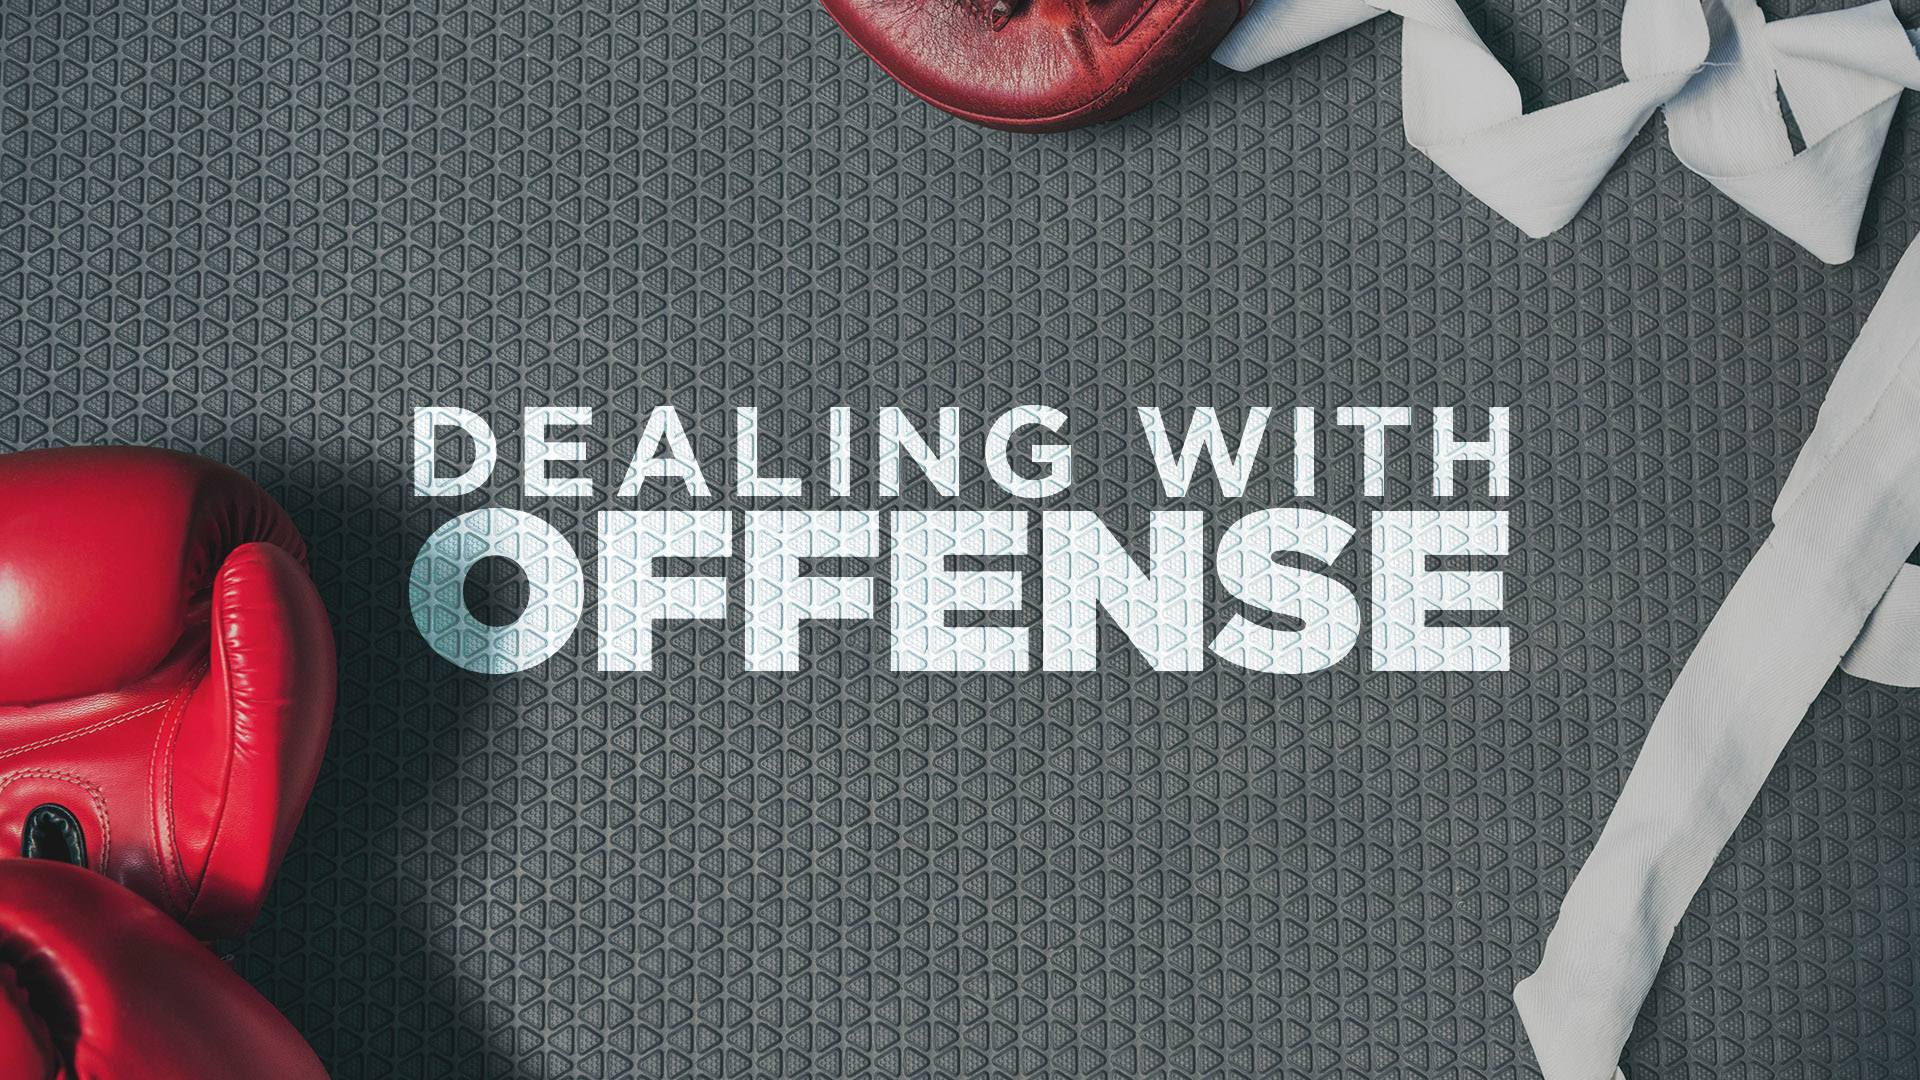 Dealing With Offense Banner - Picture of Boxing Gloves